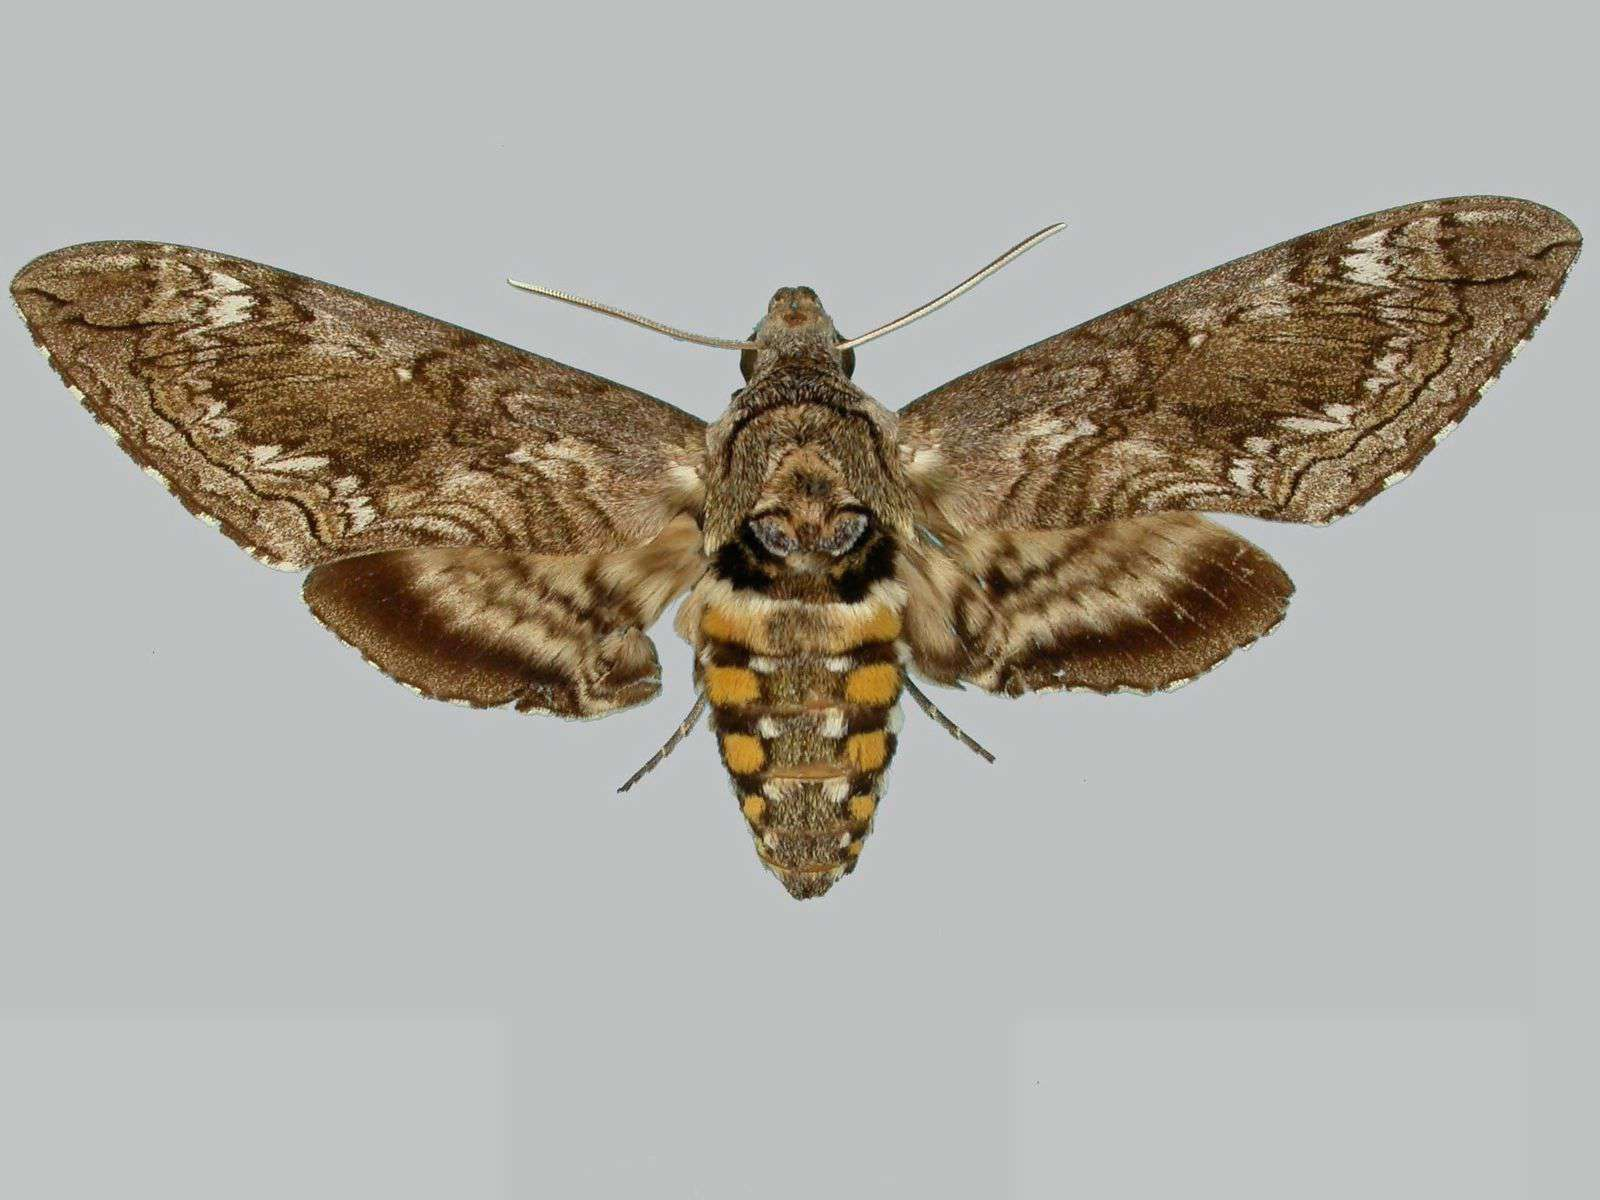 A specimen of Blackburn's sphinx moth on display on a white surface